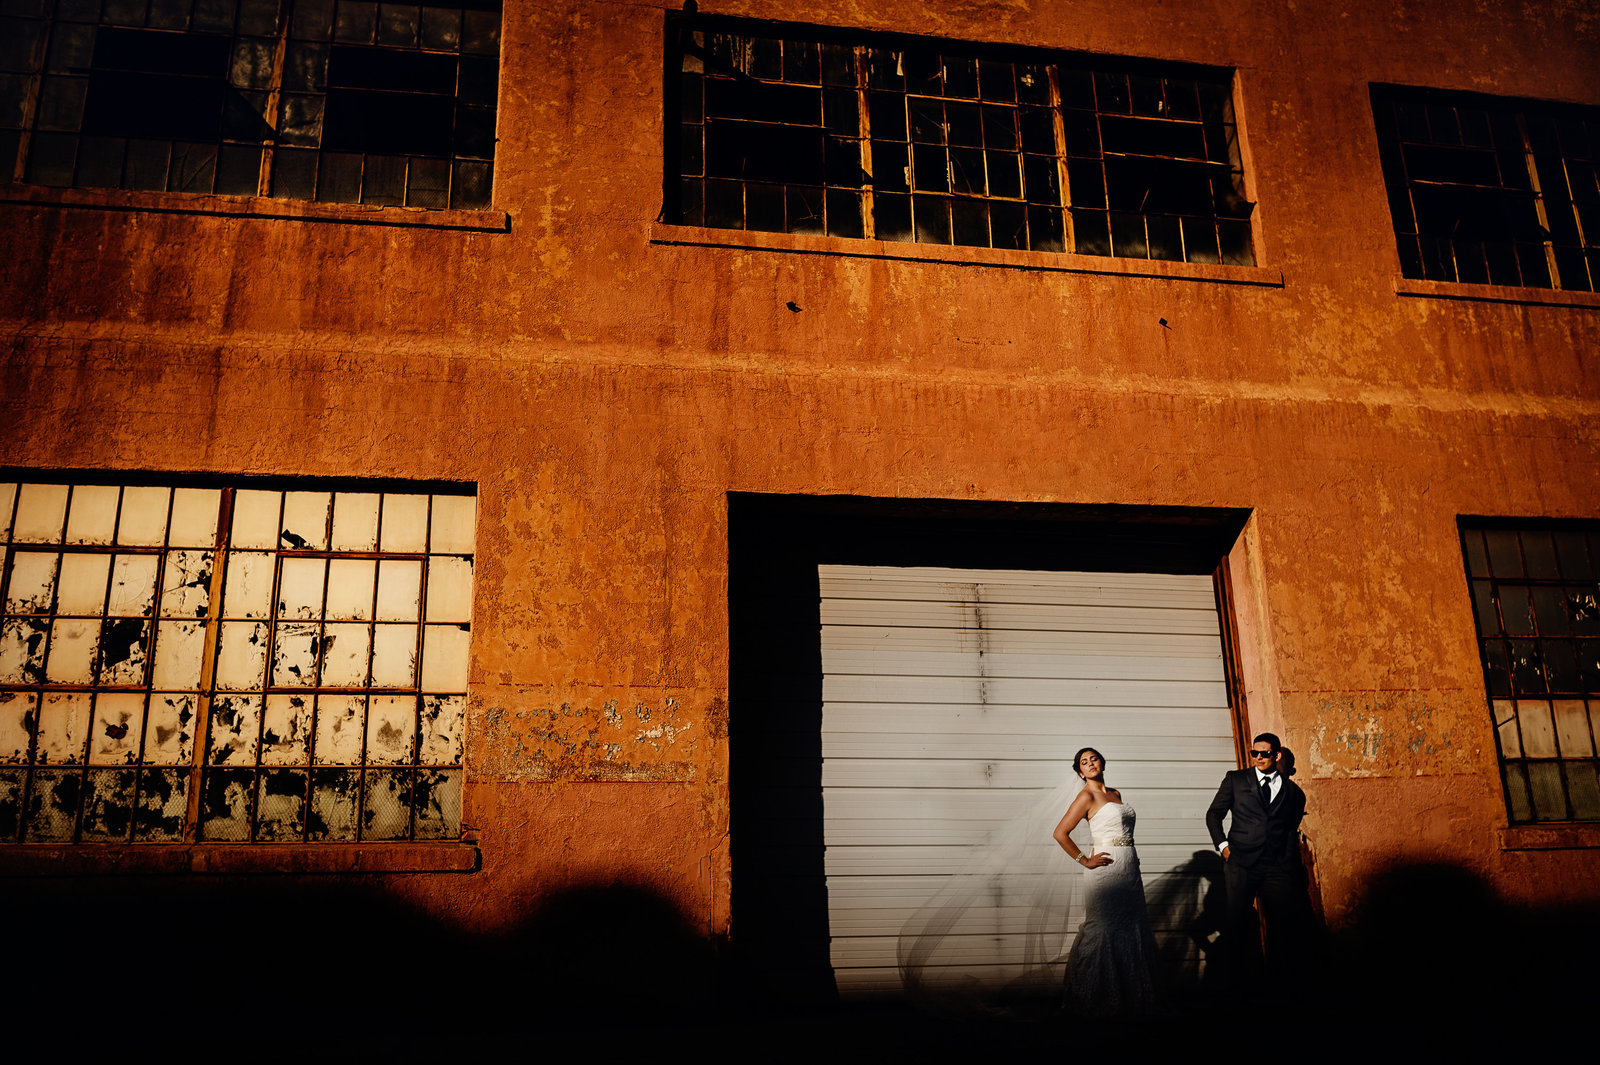 278-El-paso-wedding-photographer-YaJo_0689-Edit